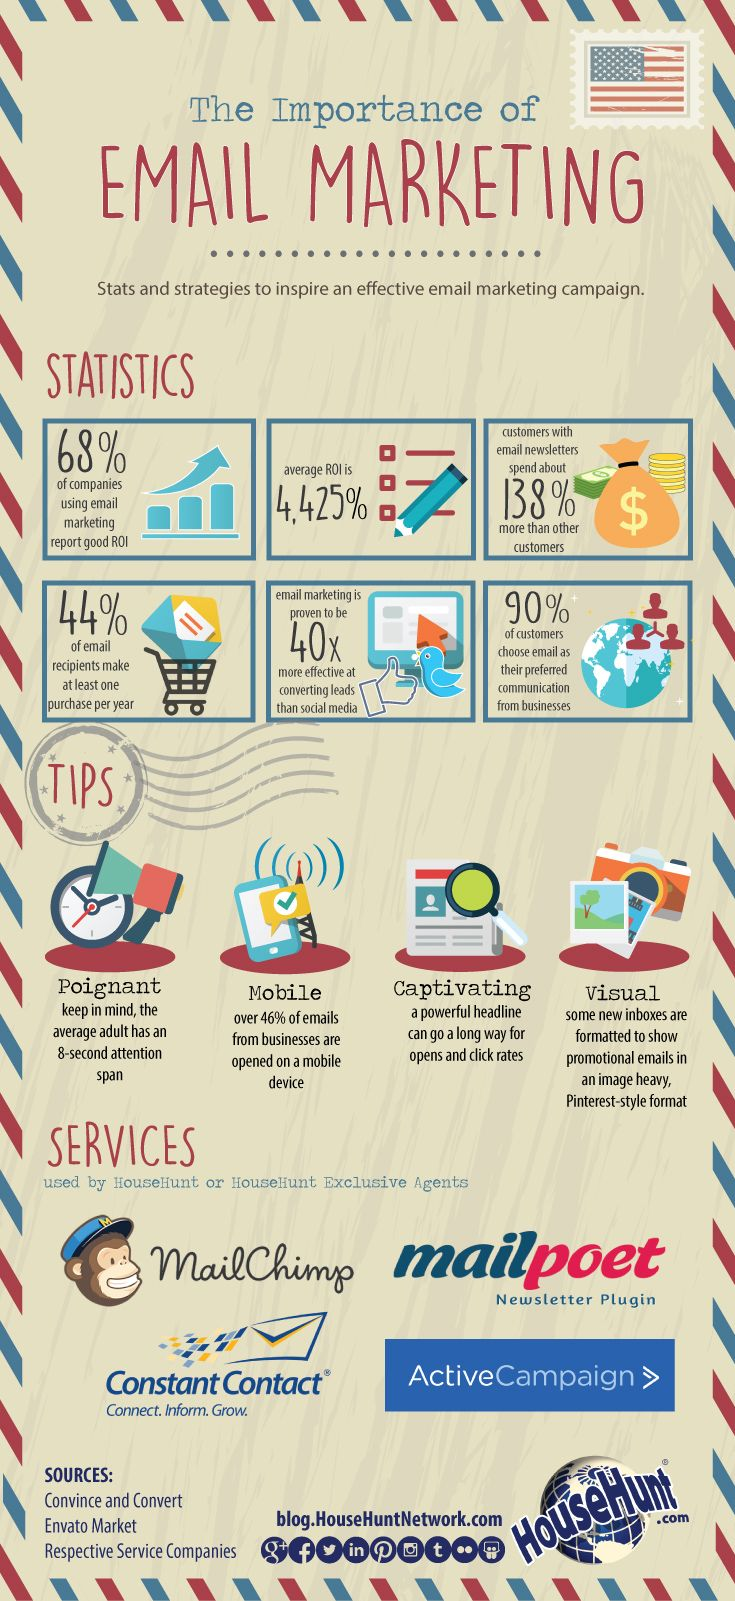 best ideas about email marketing services email the importance of email marketing infographic more email marketing goodness at emailab